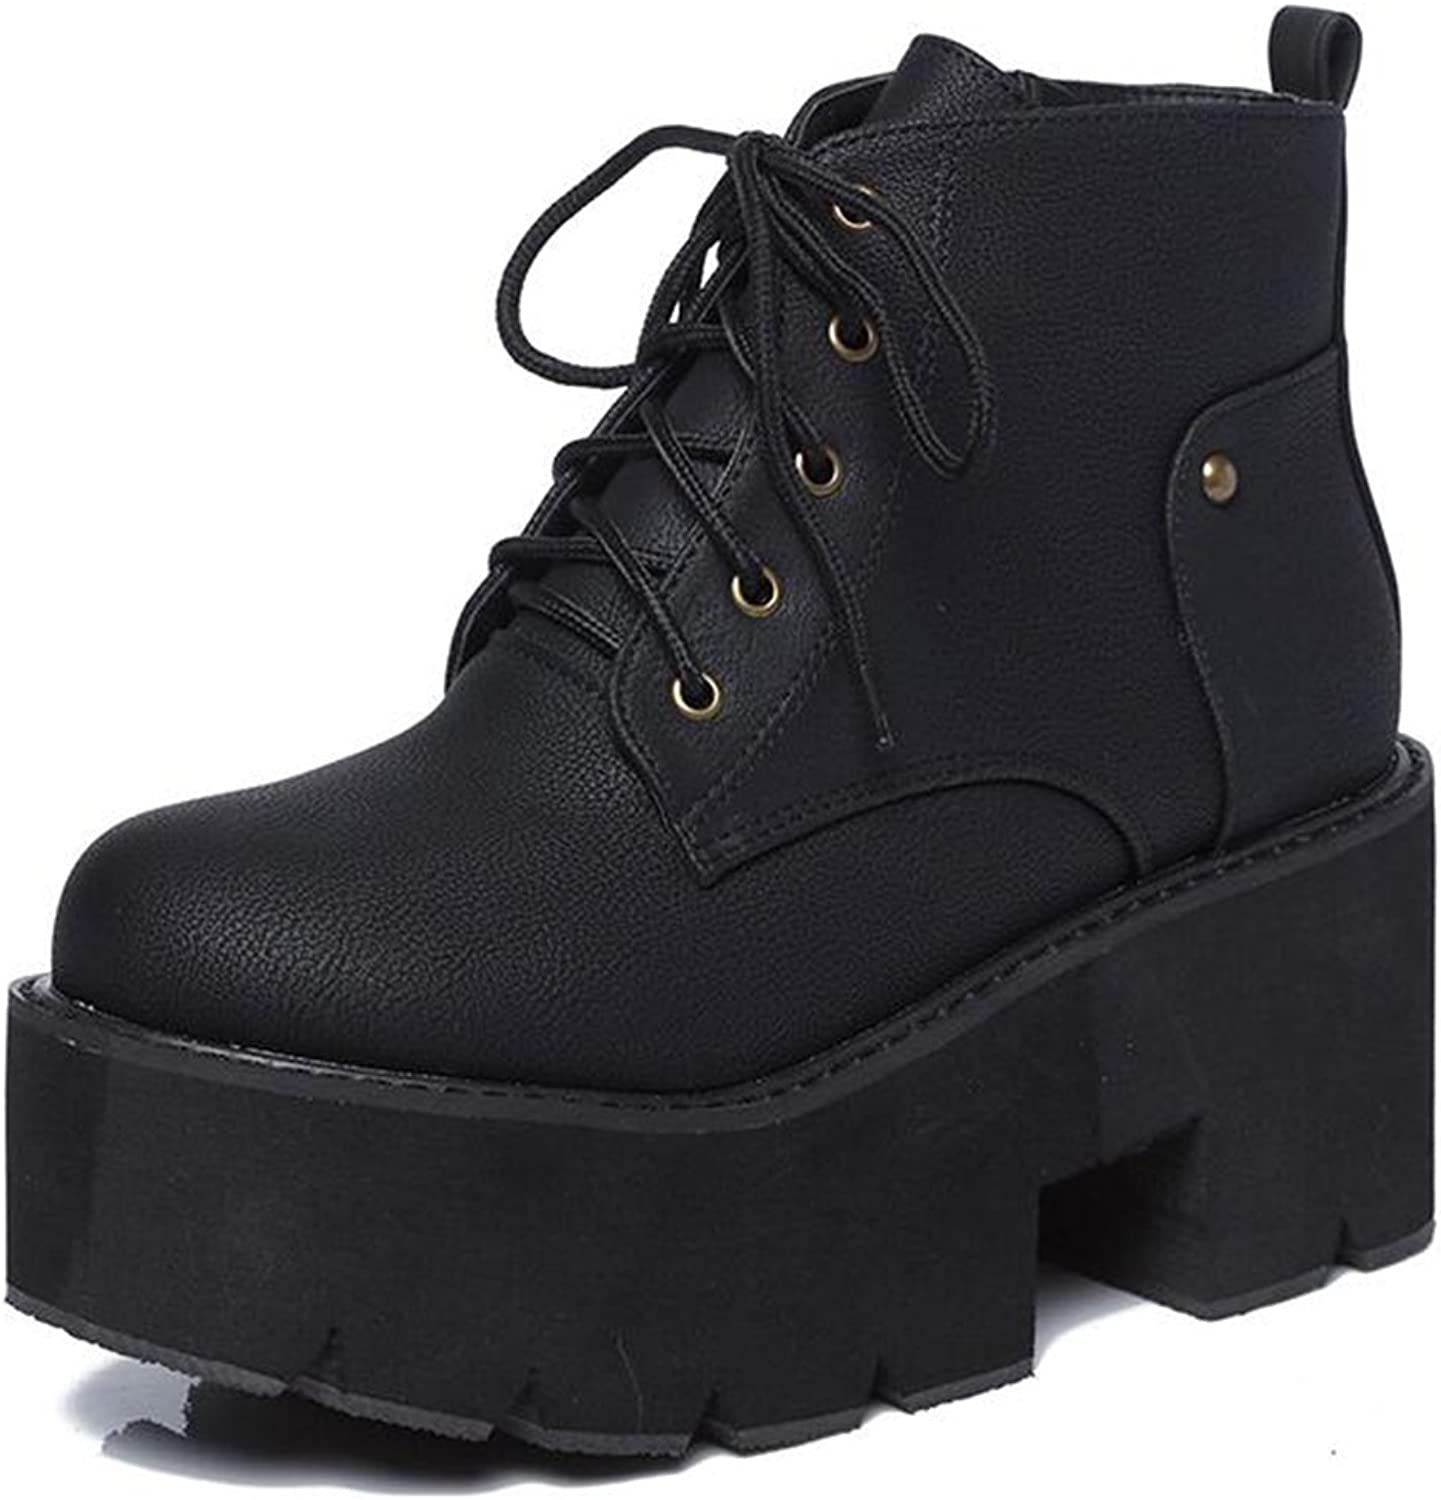 IDIFU Women's Comfy Mid Chunky Heels Platform Lace Up Side Zipper Ankle Boots Riding Booties